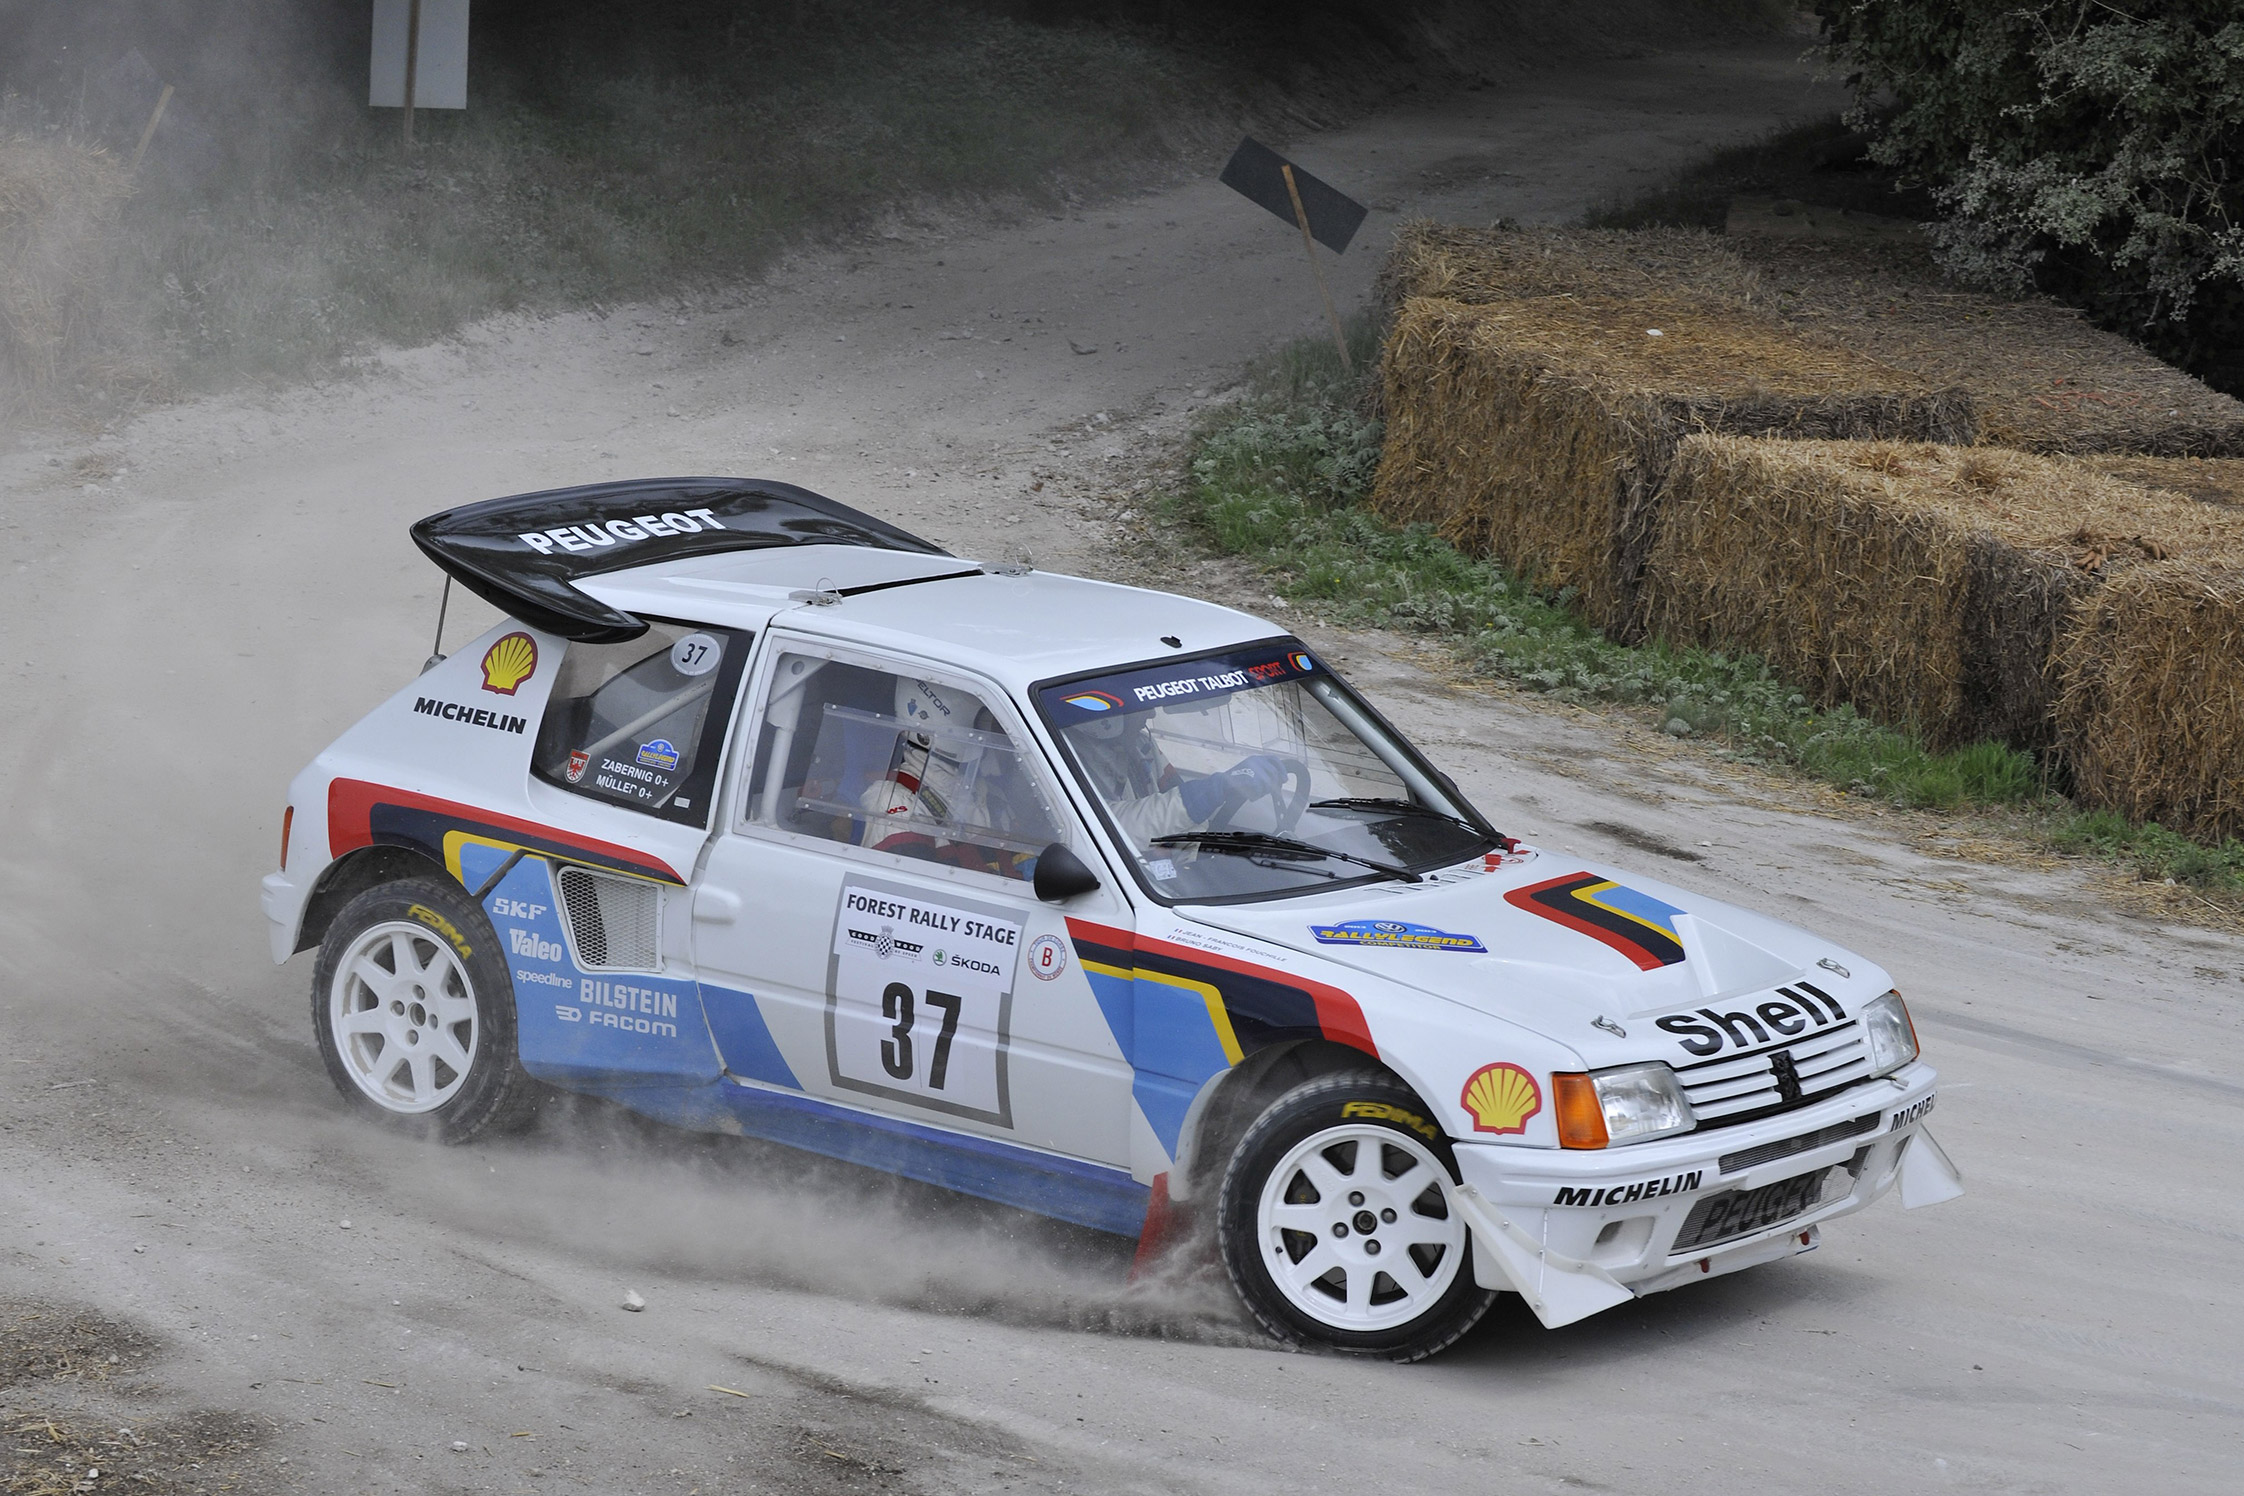 peugeot 205 turbo 16 goodwood festival of speed 2014 diaporama photo. Black Bedroom Furniture Sets. Home Design Ideas